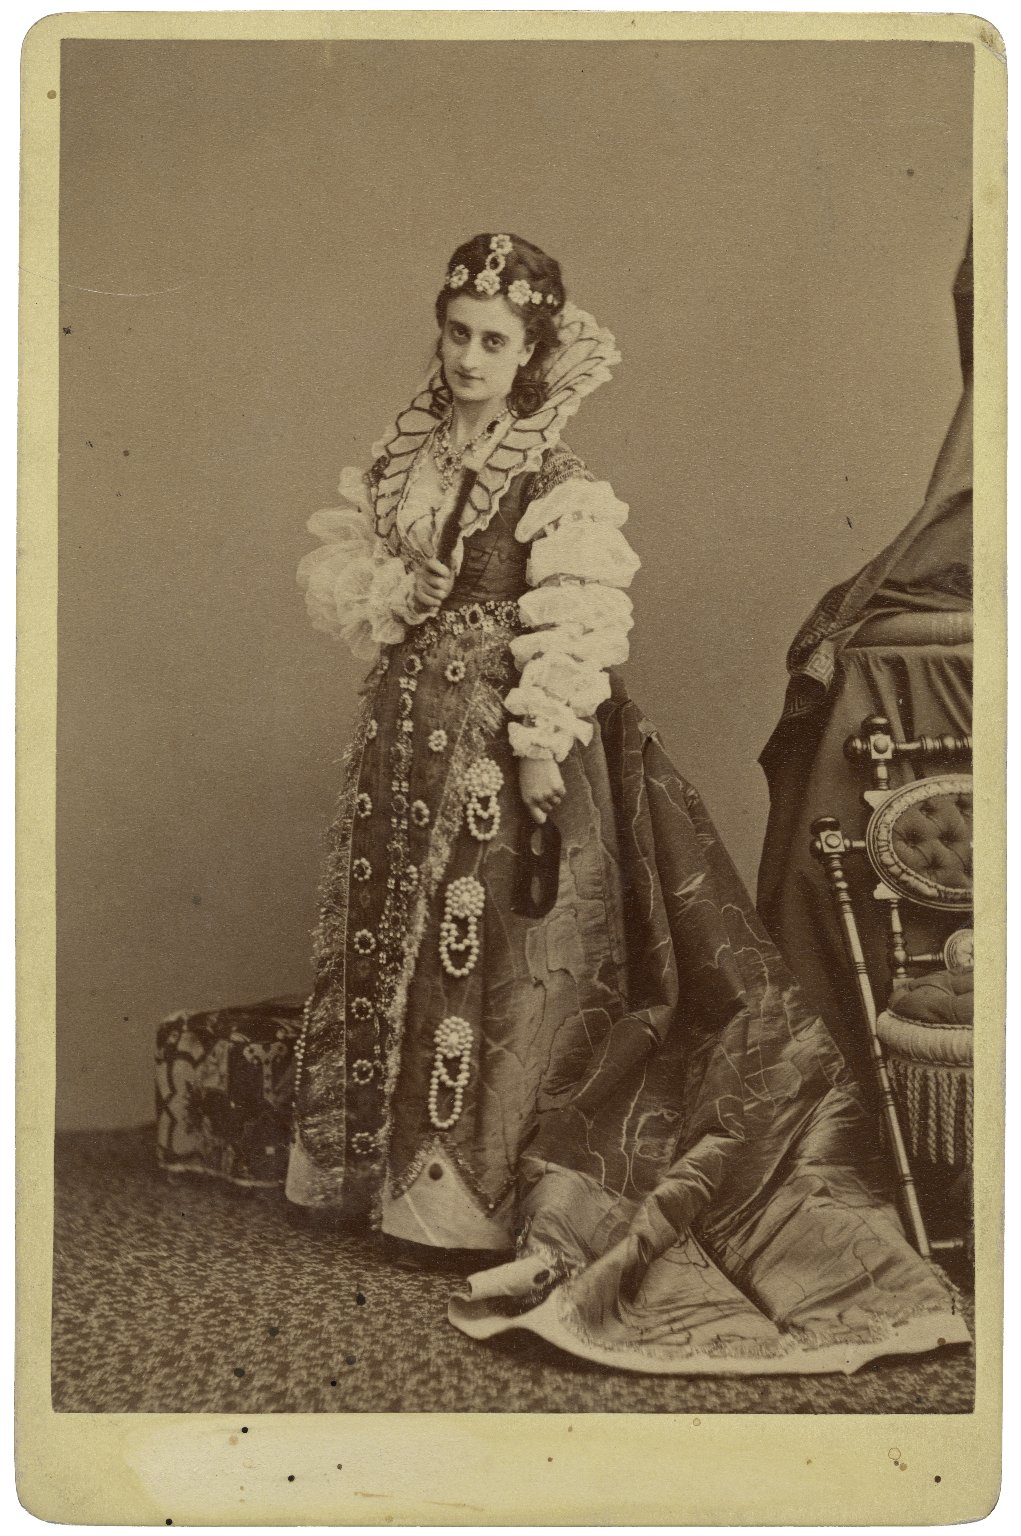 [Mrs. S. Siddons as Beatrice in Shakespeare's Much ado about nothing] [graphic] / Gurney, Fifth Avenue, Cor. 16th St., N.Y.